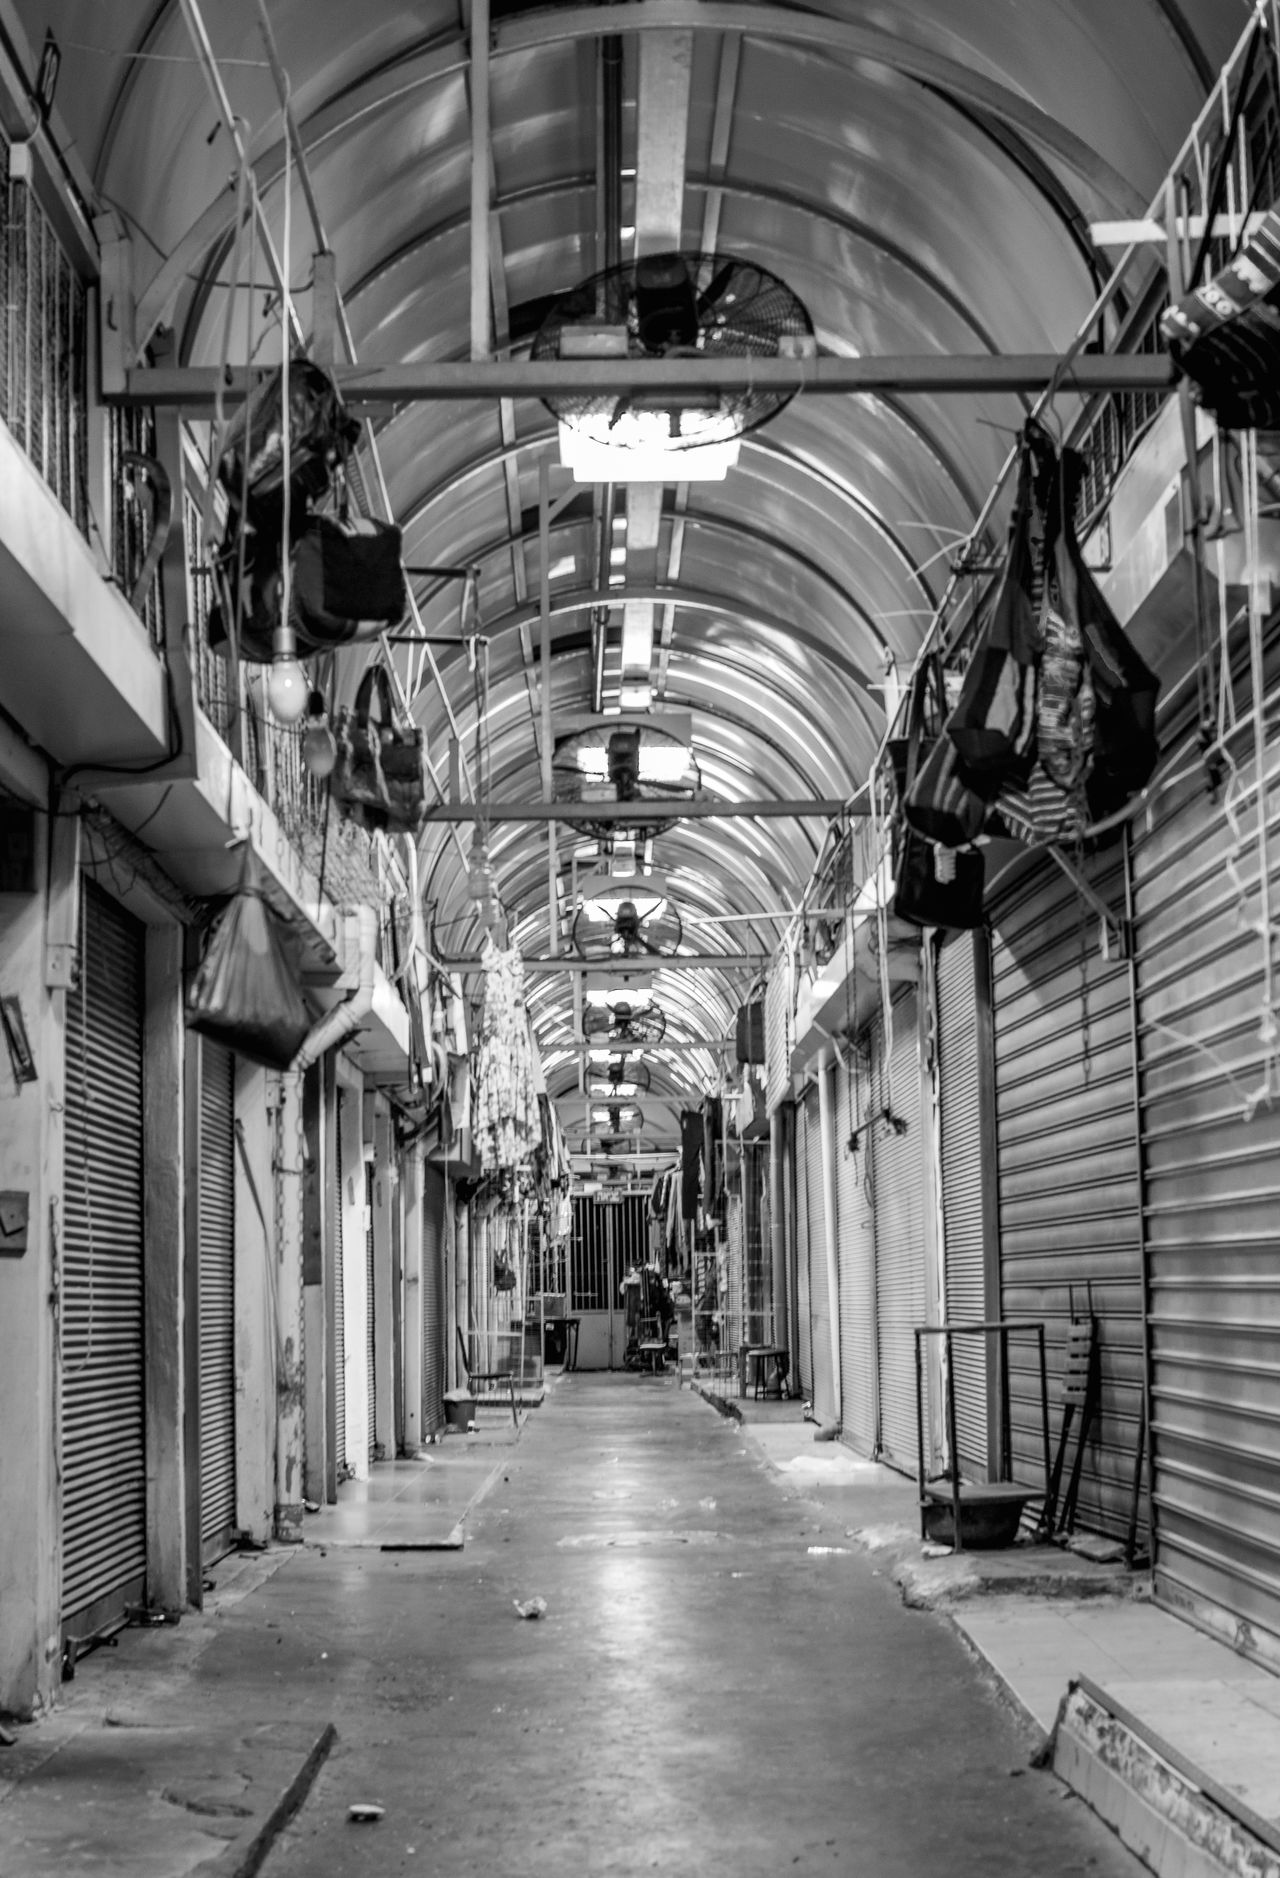 Jaffa FleeMarket By Night Architecture Black And White Blackandwhite Ceiling Ceiling Light  Closed Corridor Day Diminishing Perspective Emptiness Empty Empty Places Fleemarket In A Row Indoors  Market Narrow Night Nightphotography Overnight Success Shop Surface Level The Way Forward Monochrome Photography Embrace Urban Life Finding New Frontiers